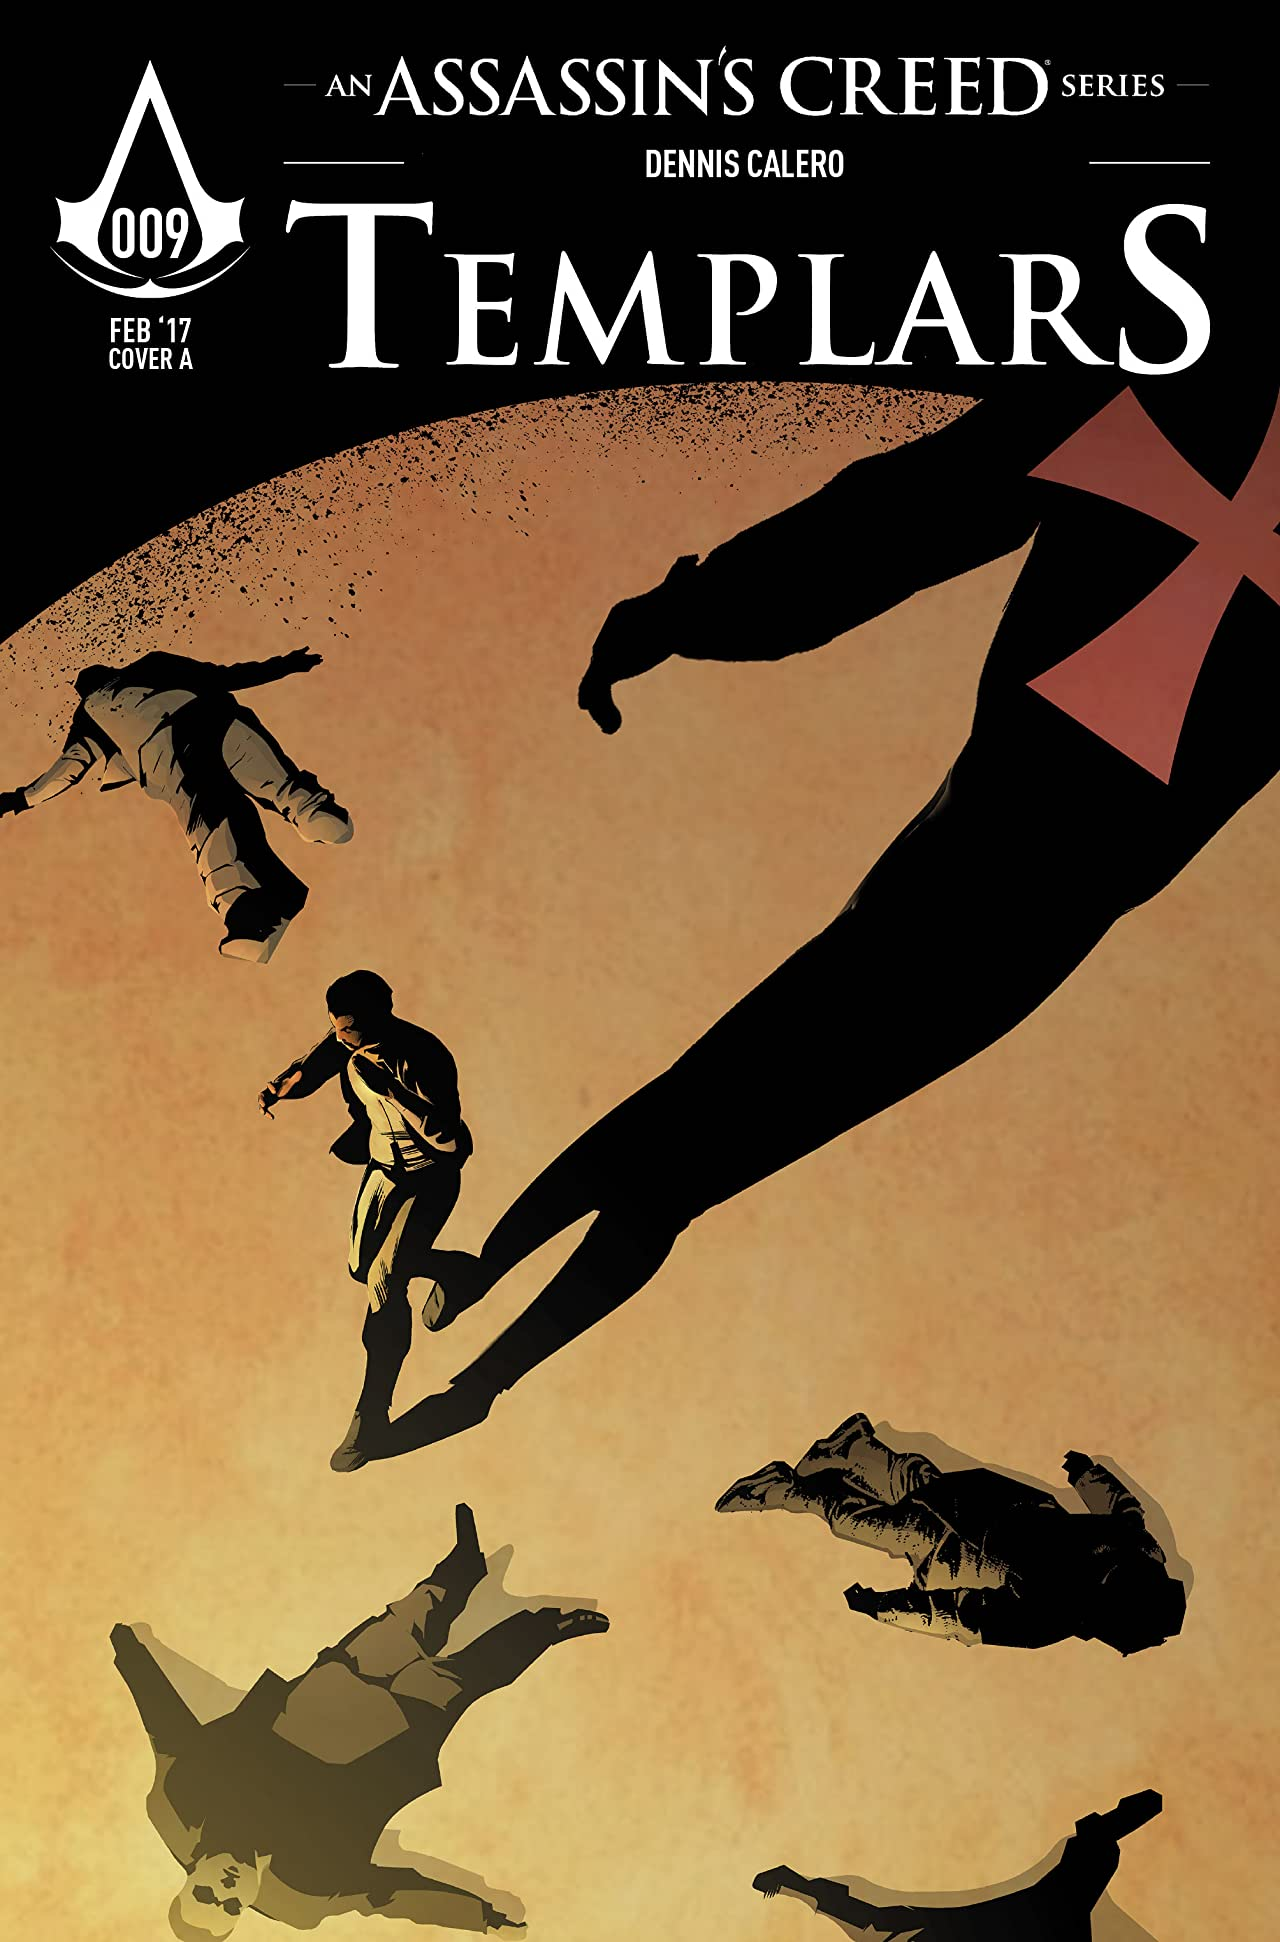 Assassin's Creed: Templars #9